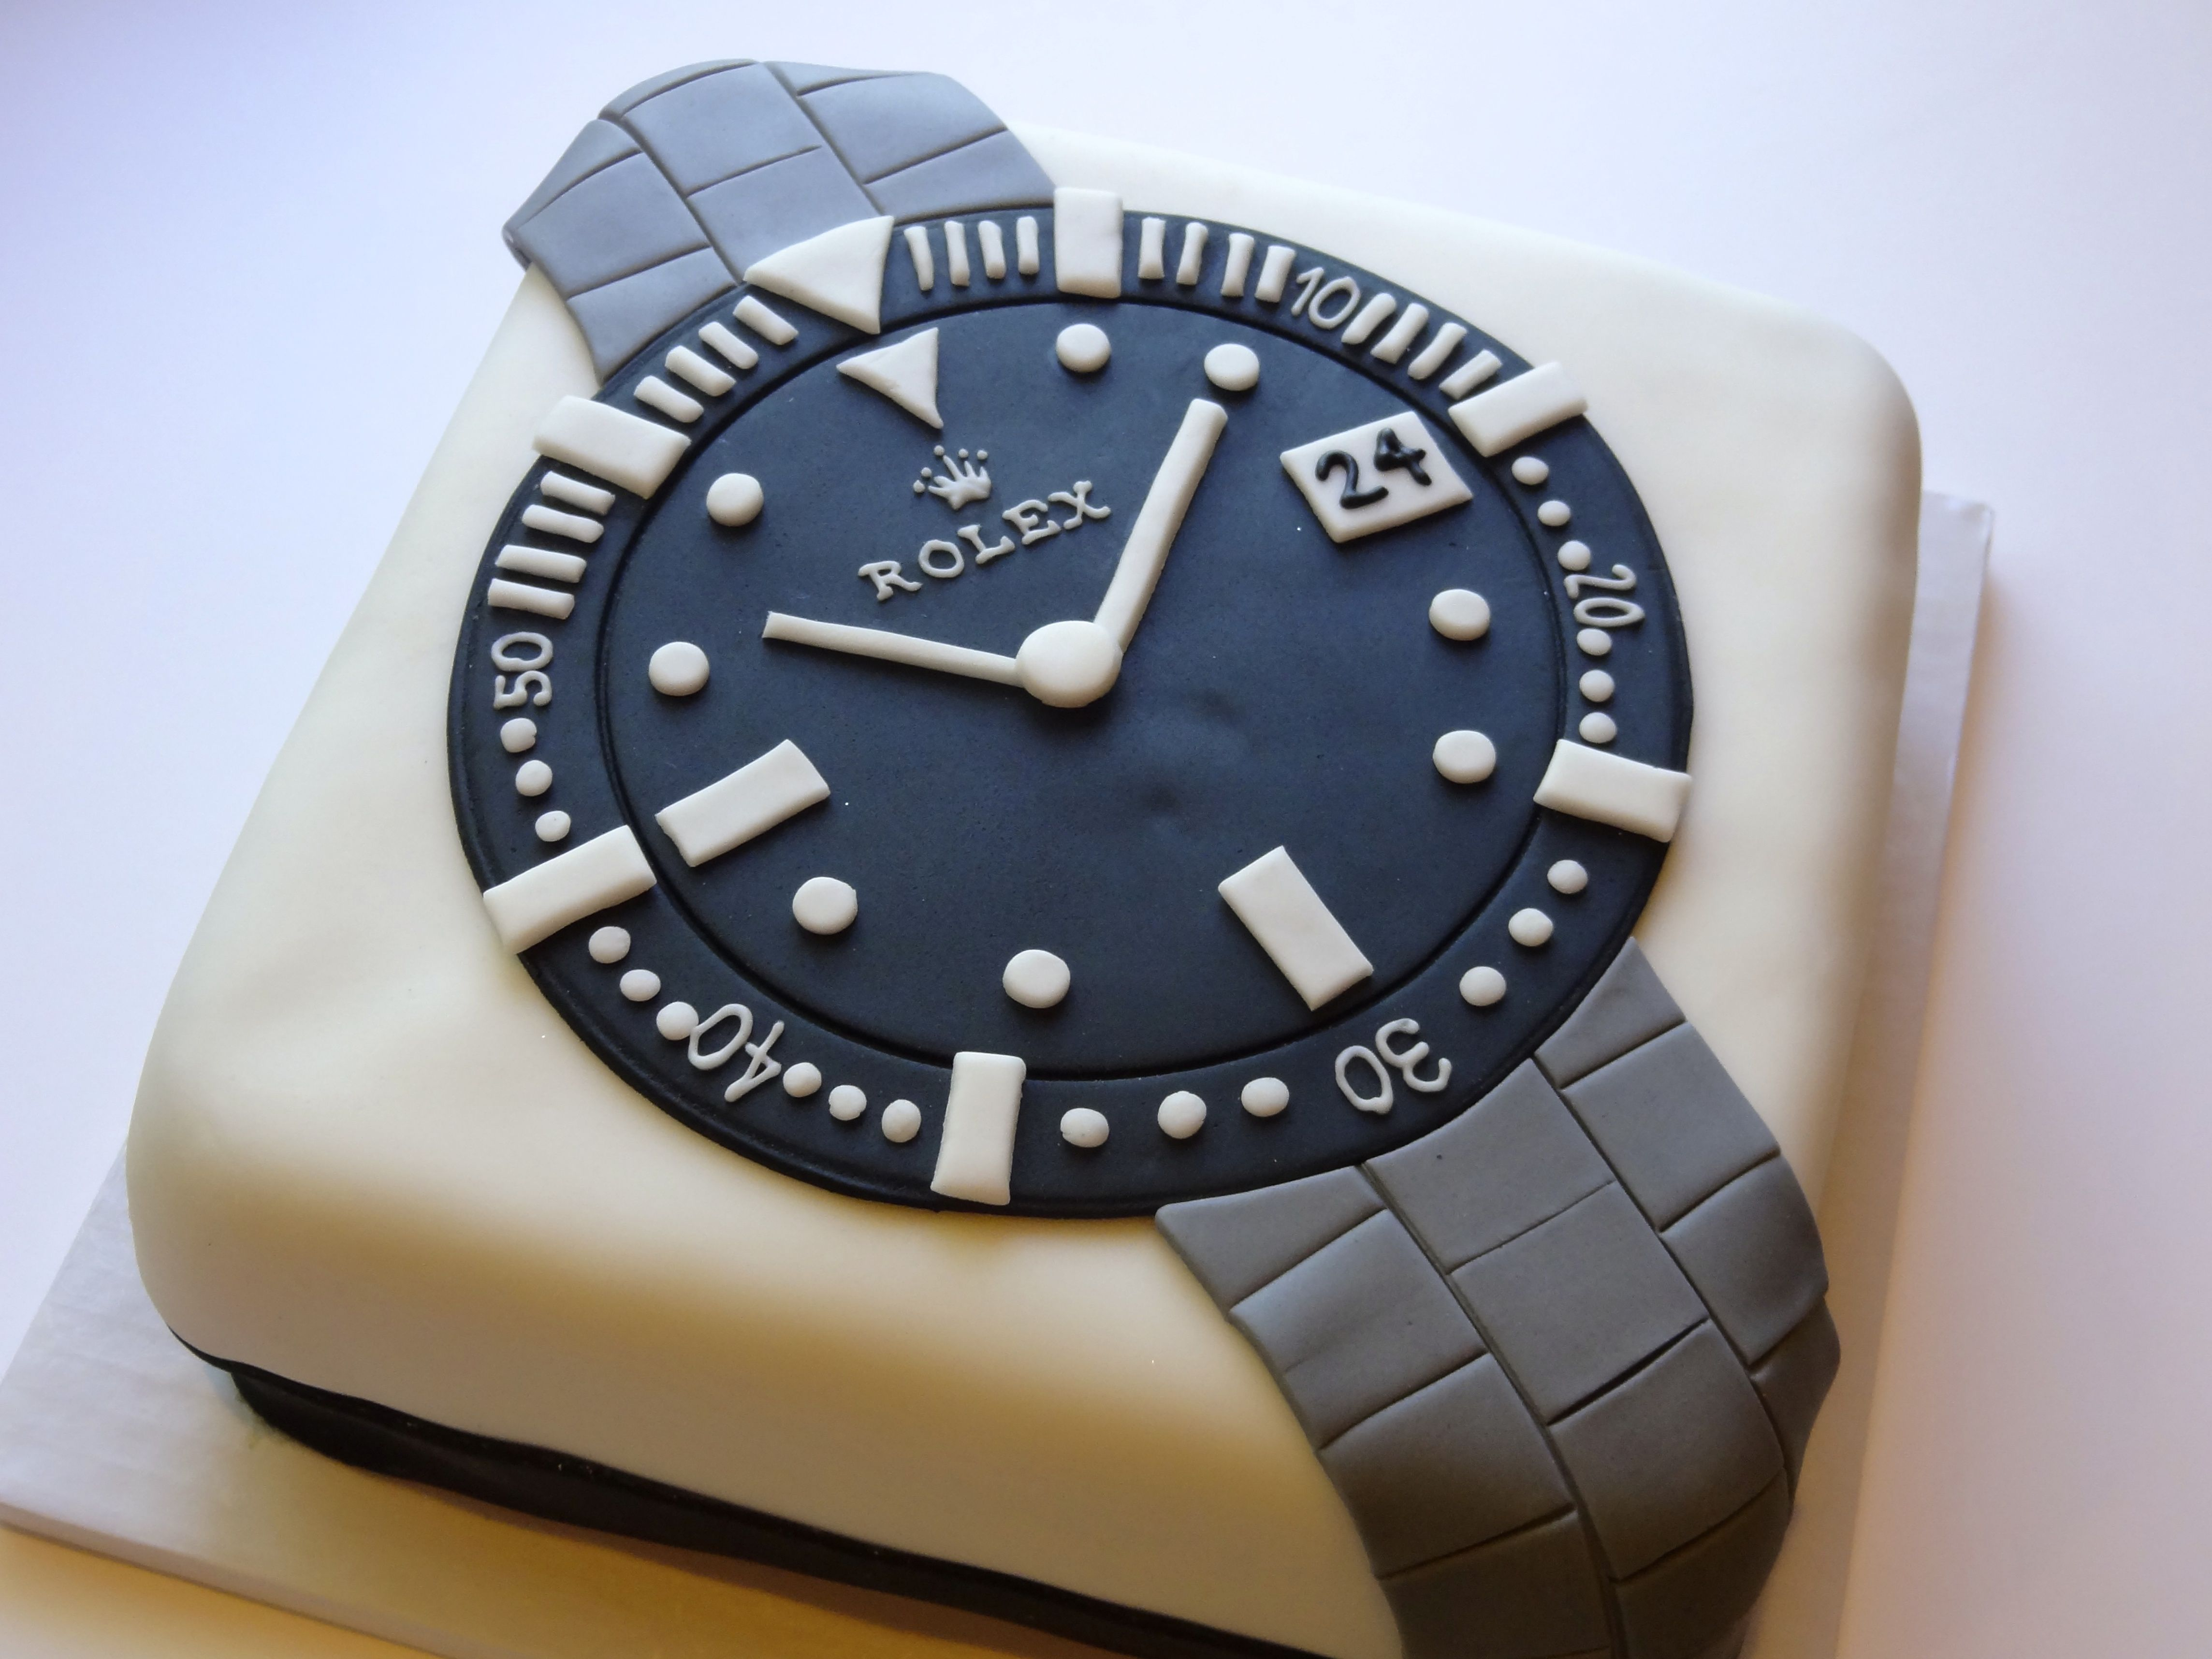 How To Make A Rolex Watch Cake